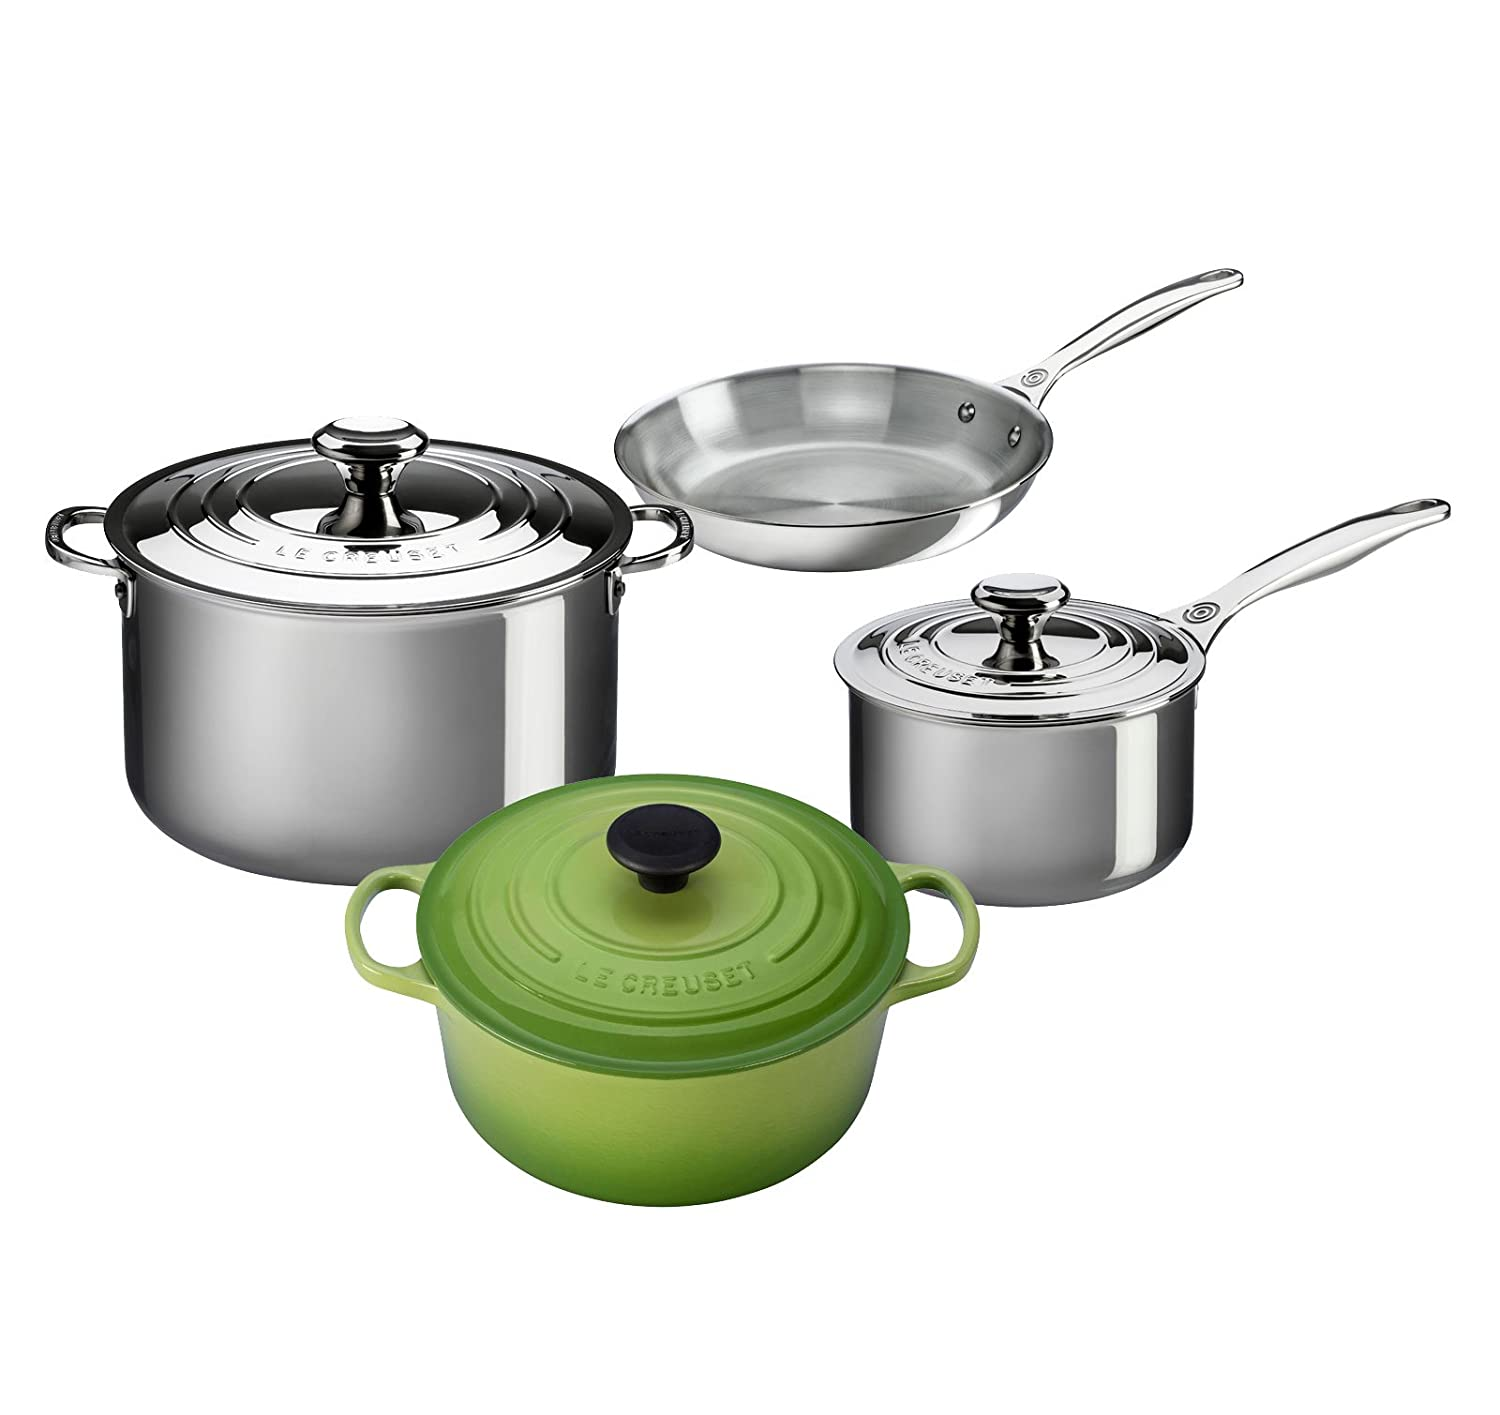 Amazon.com: Le Creuset 7-Piece Stainless Steel and Enameled Cast ...